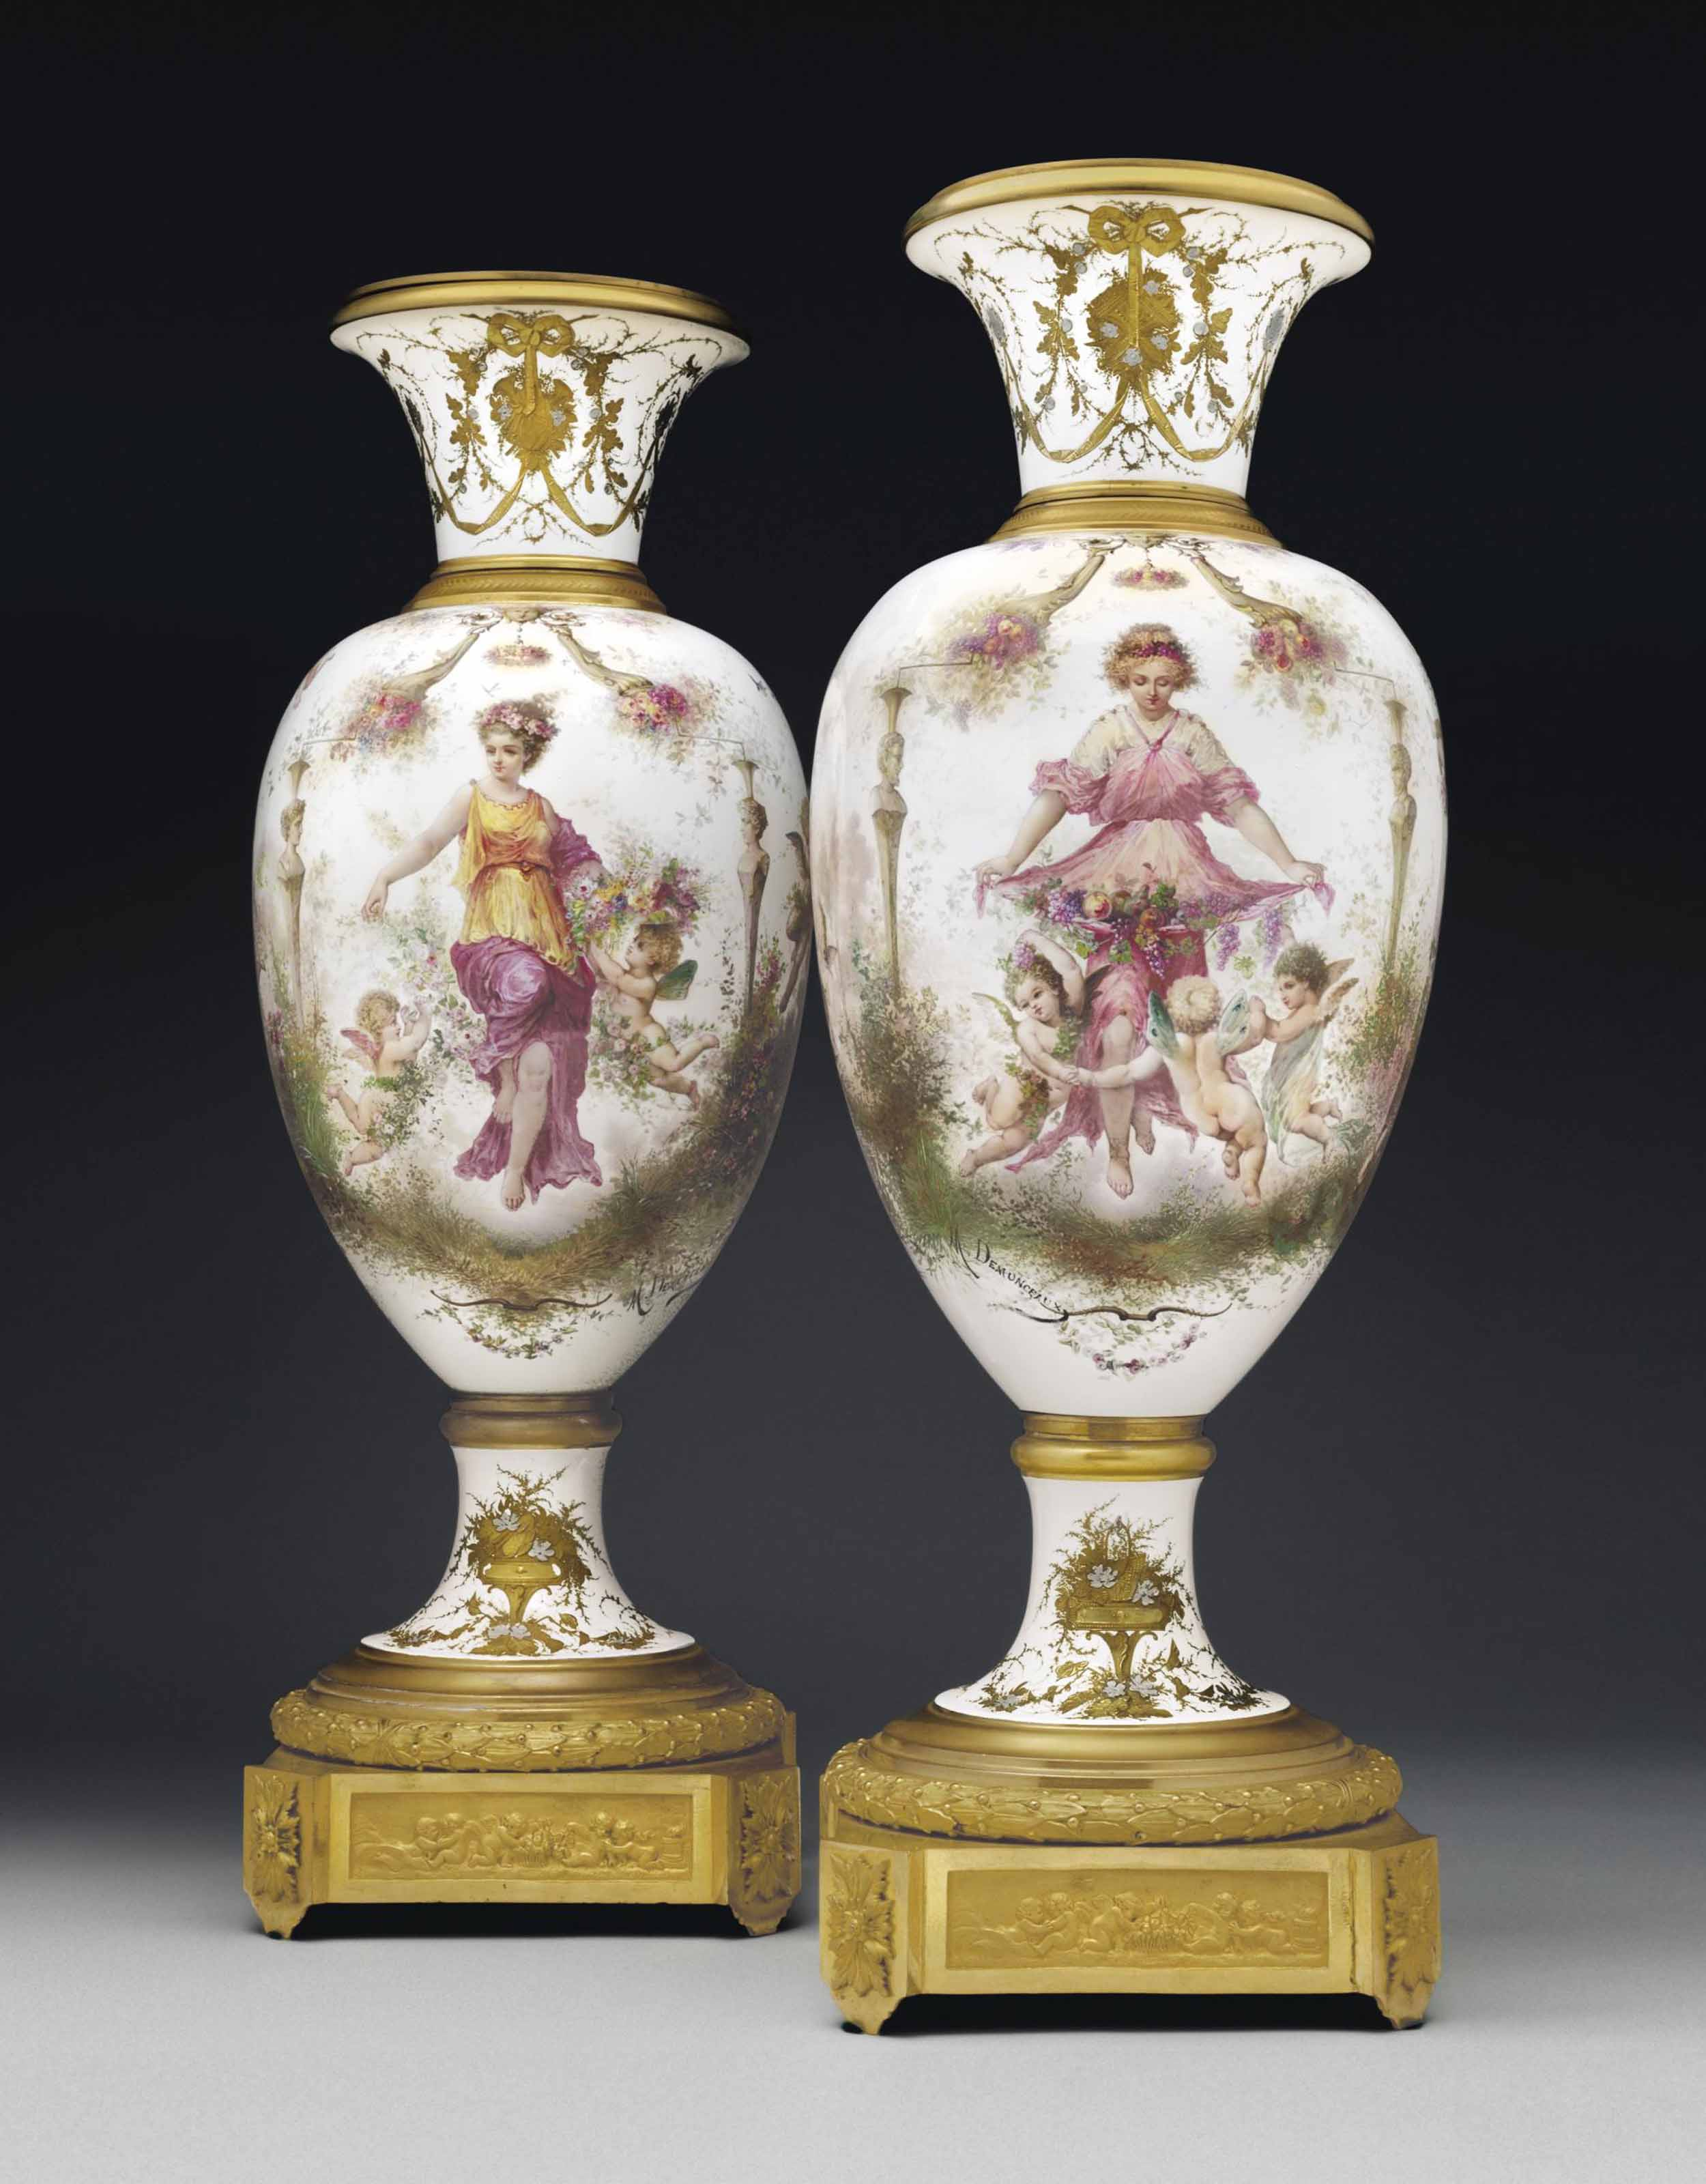 A PAIR OF ORMOLU-MOUNTED SEVRES STYLE PORCELAIN VASES